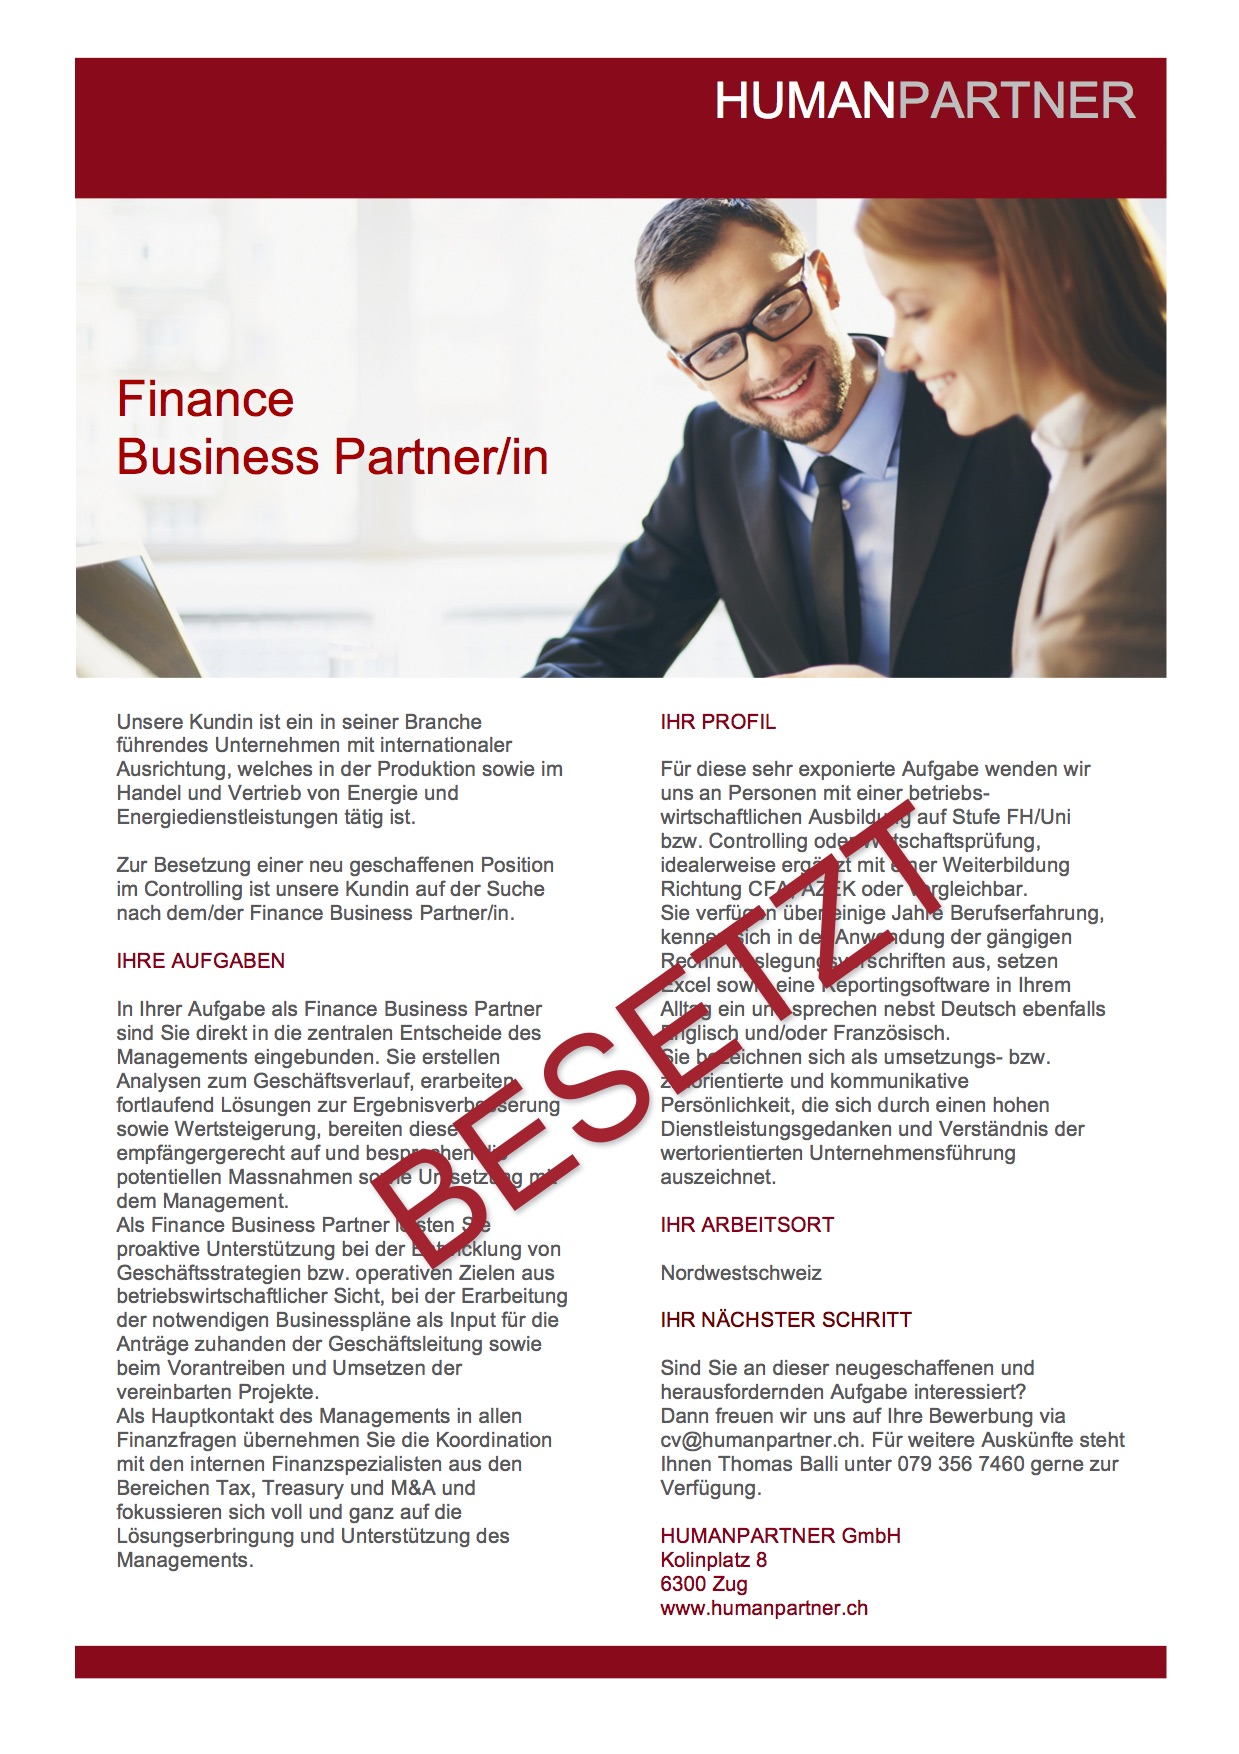 Finance Business PartnerIn neu